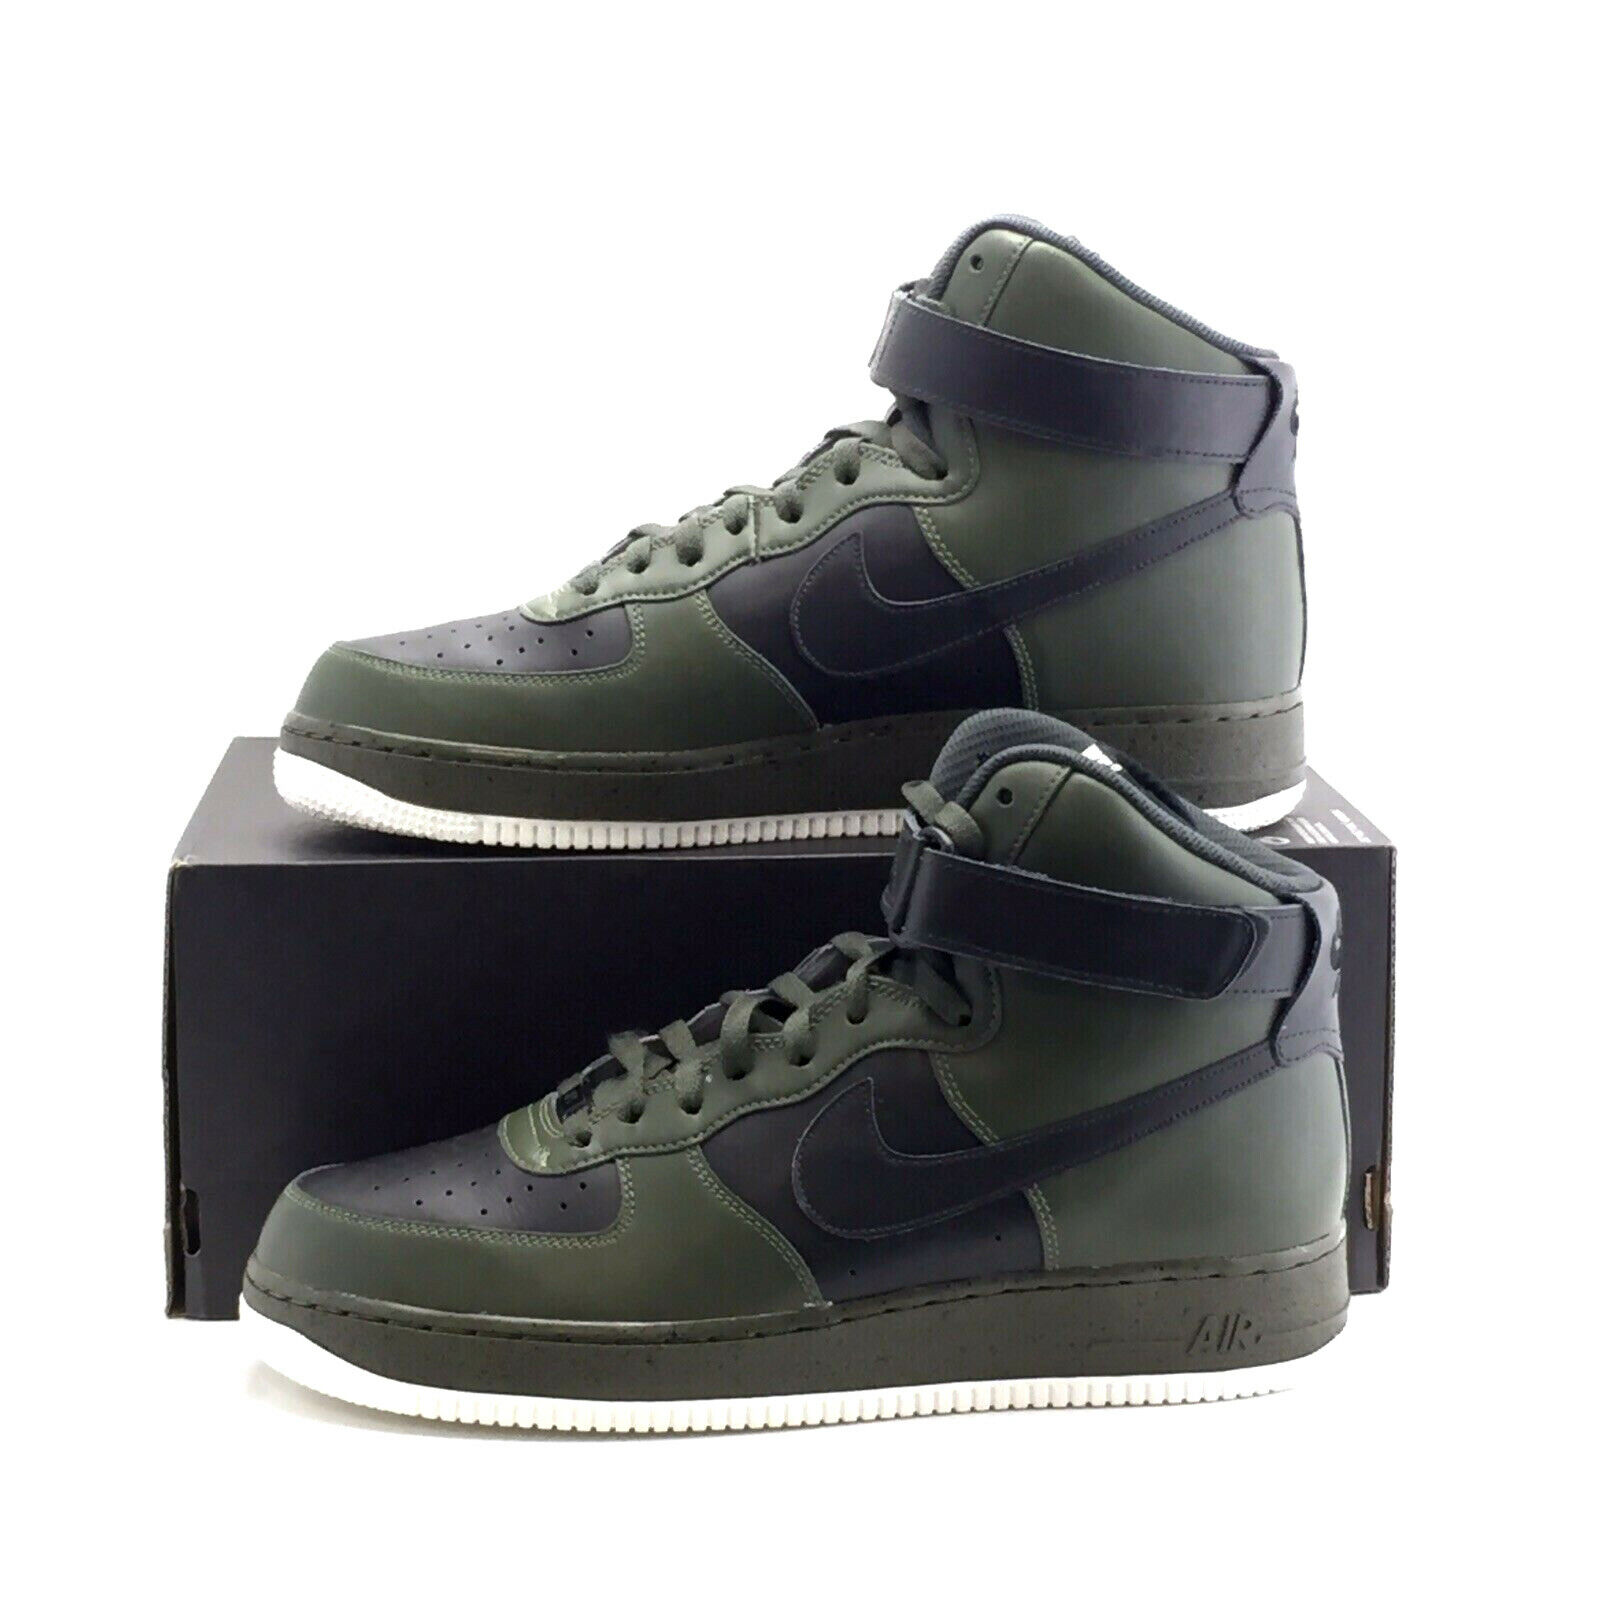 32a12c495b3a3 UK - AF1 NikeiD Leather HIGH 1 FORCE AIR NIKE 10.5 Trainers Olive ...